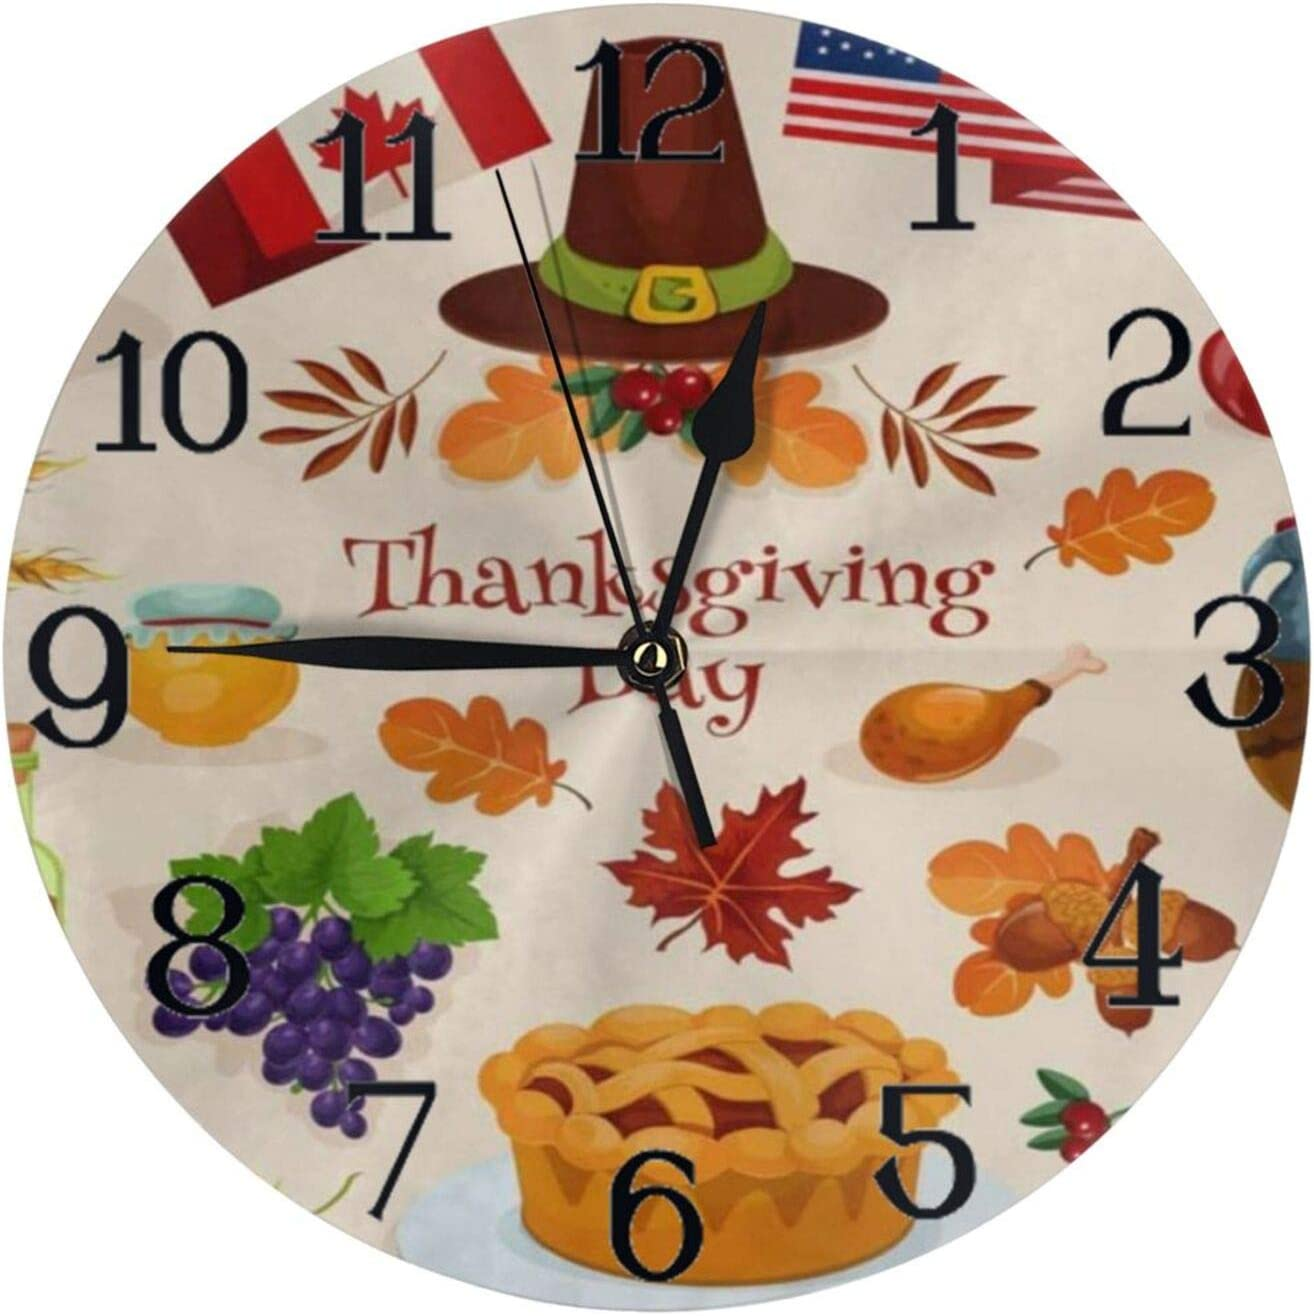 Wall Clock Large Thanksgiving Turkey Pilgrim Hat Pumpkin Apple Pie Cornucopia Non Ticking Kitchen Bedroom Bathroom Wall Clocks Battery Operated Silent Outdoor Desk Cute Clock Living Room Decor for Kid